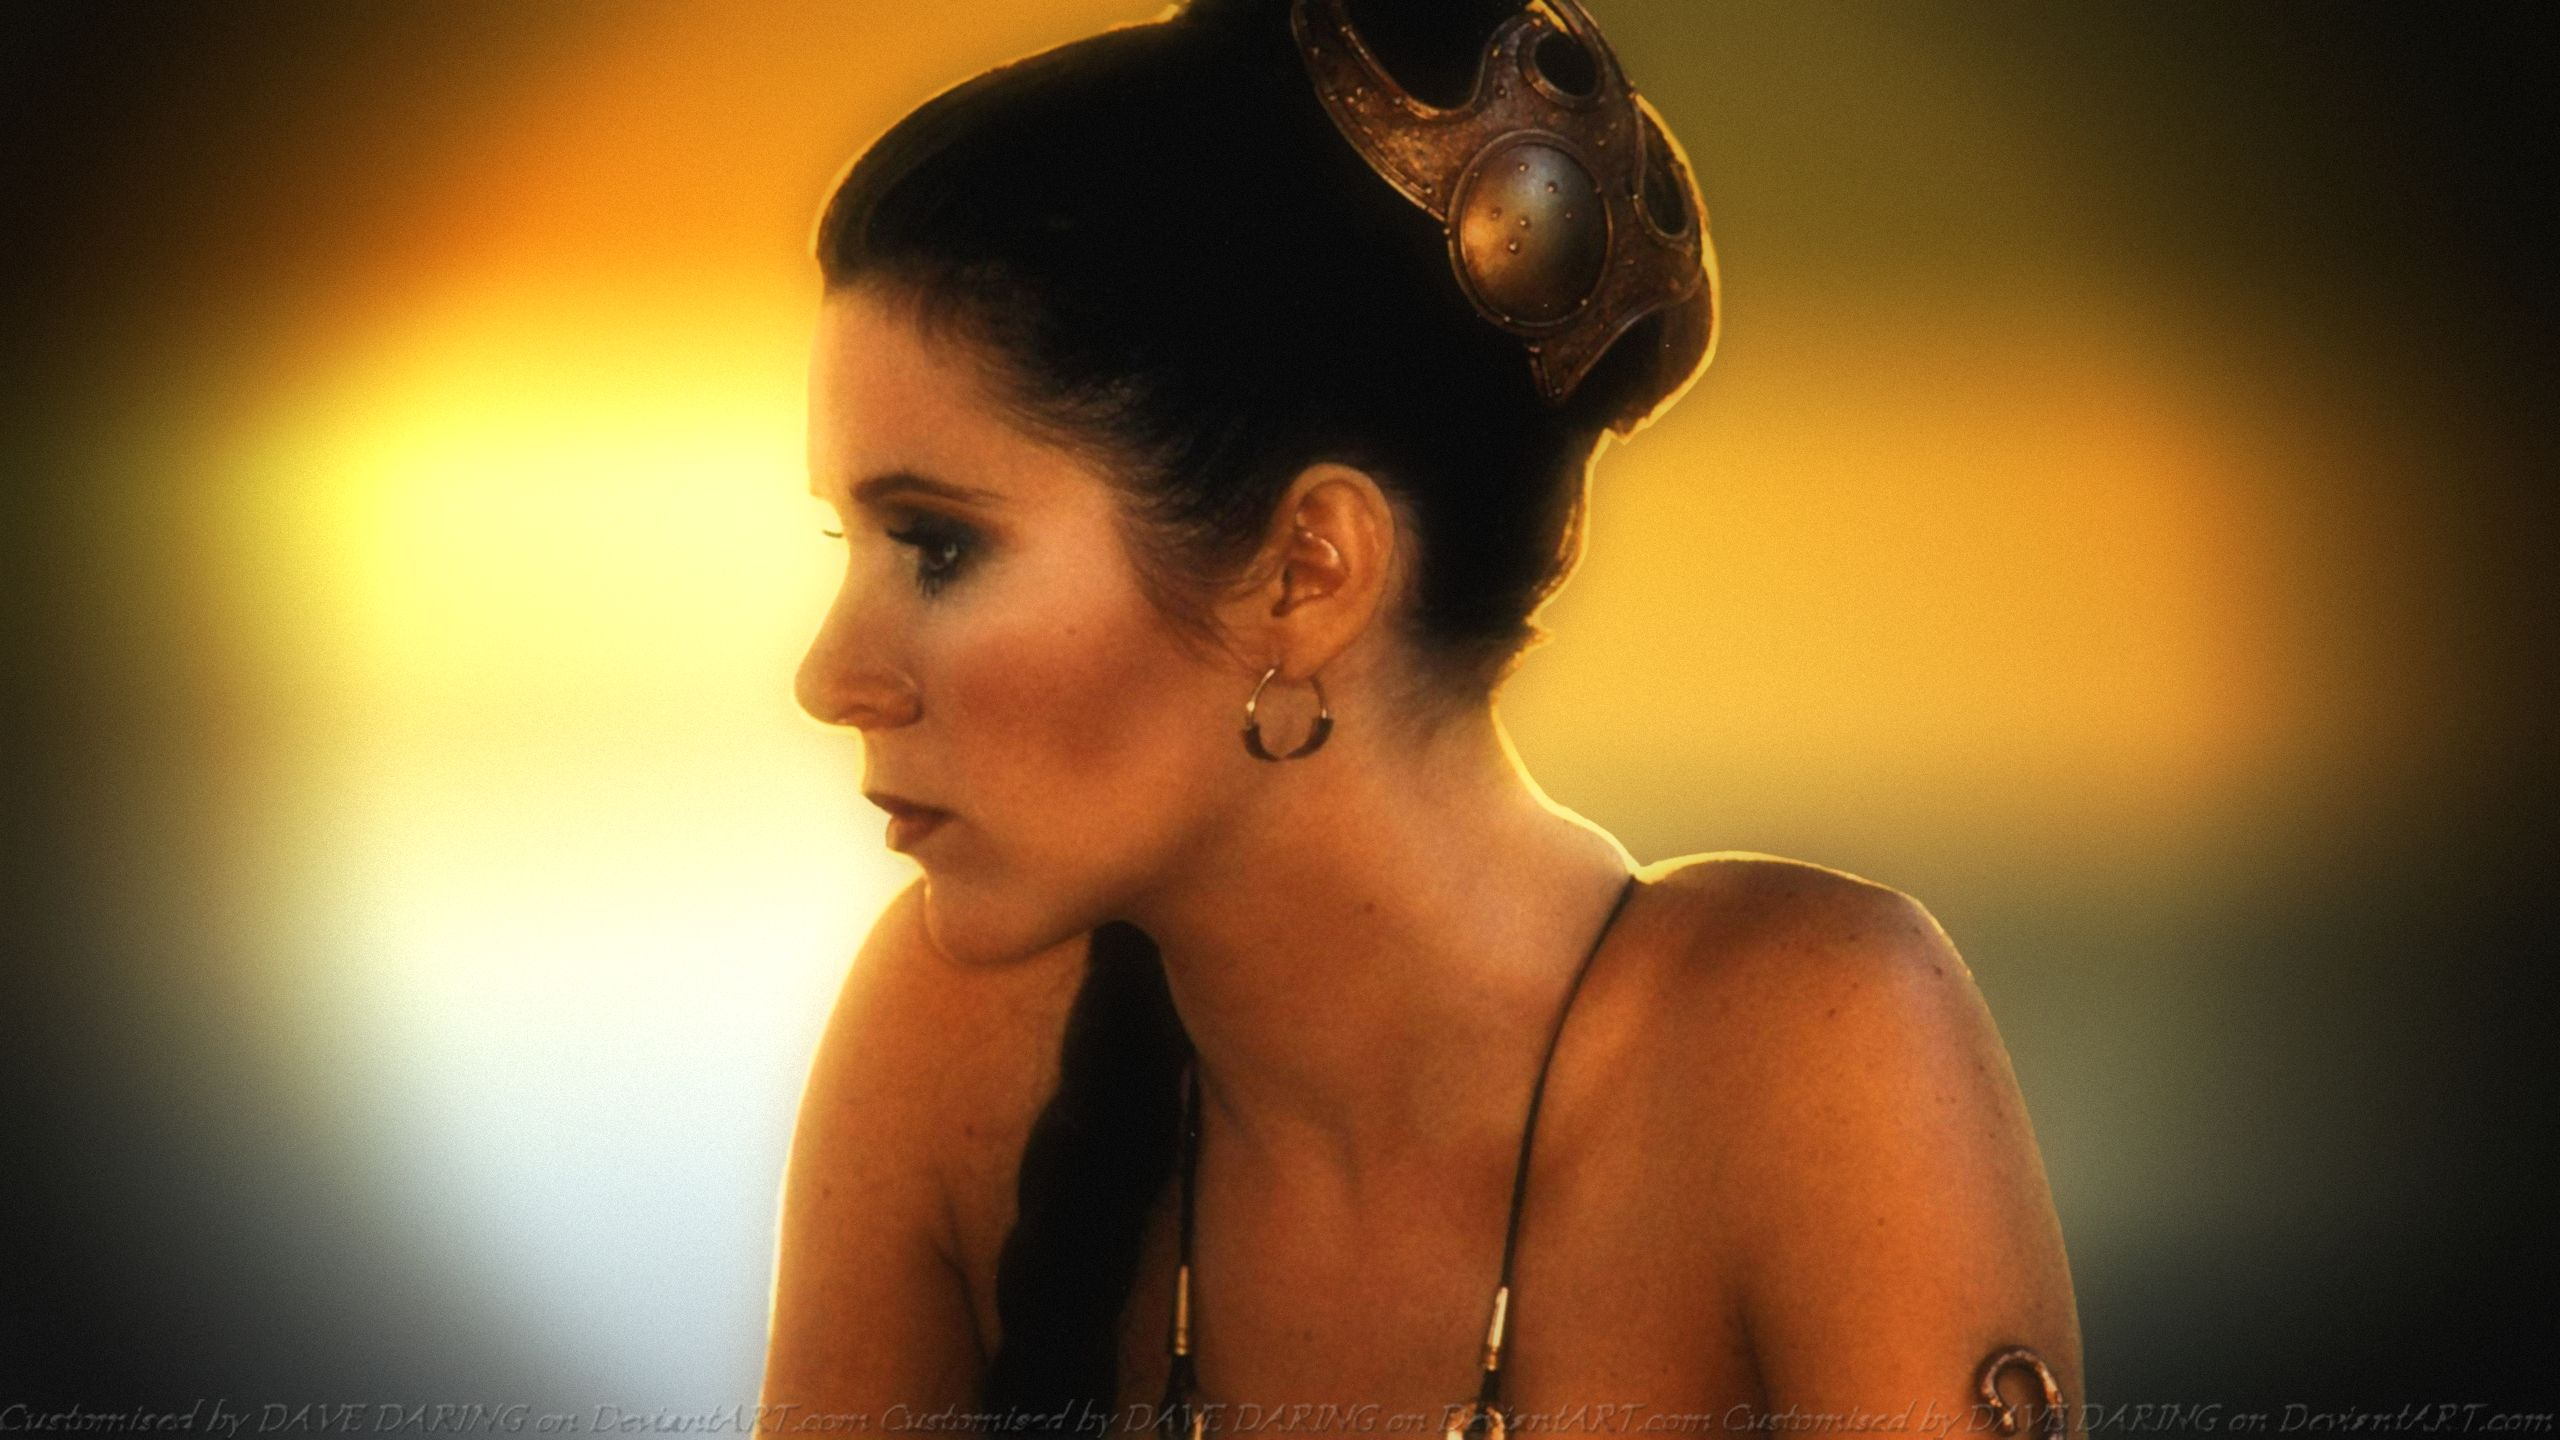 Carrie Fisher Slave Girl Princess XI by Dave-Daring